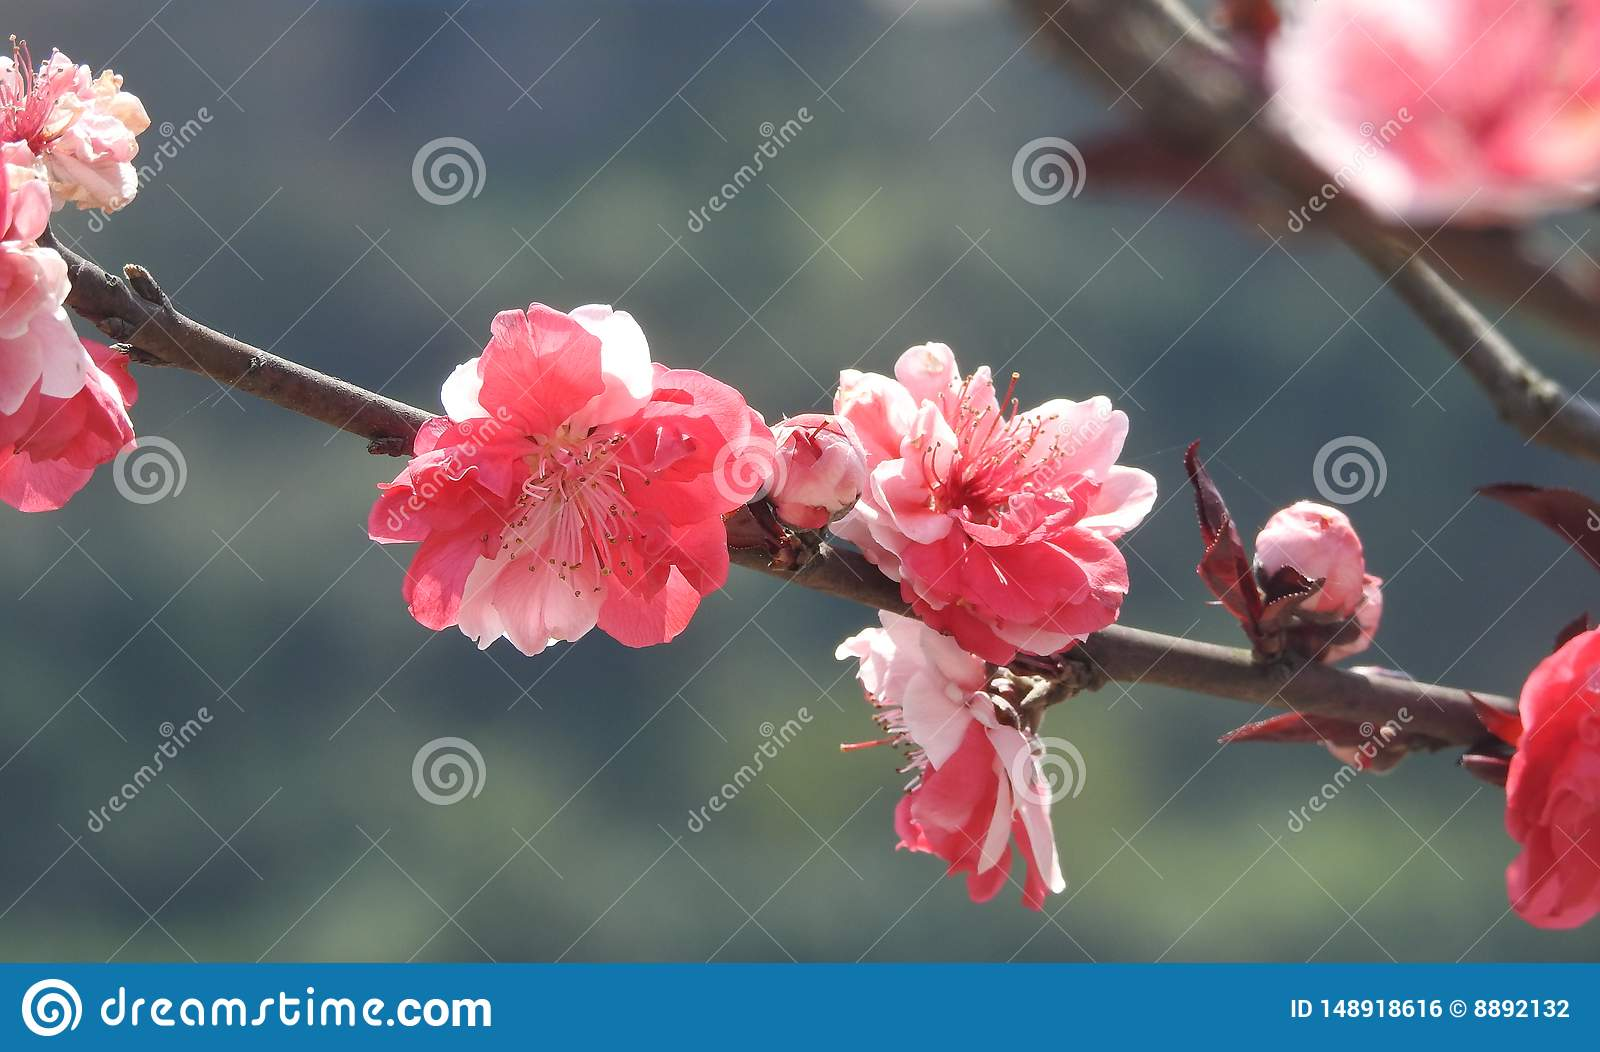 Wintersweet ,Bright red plum blossoms